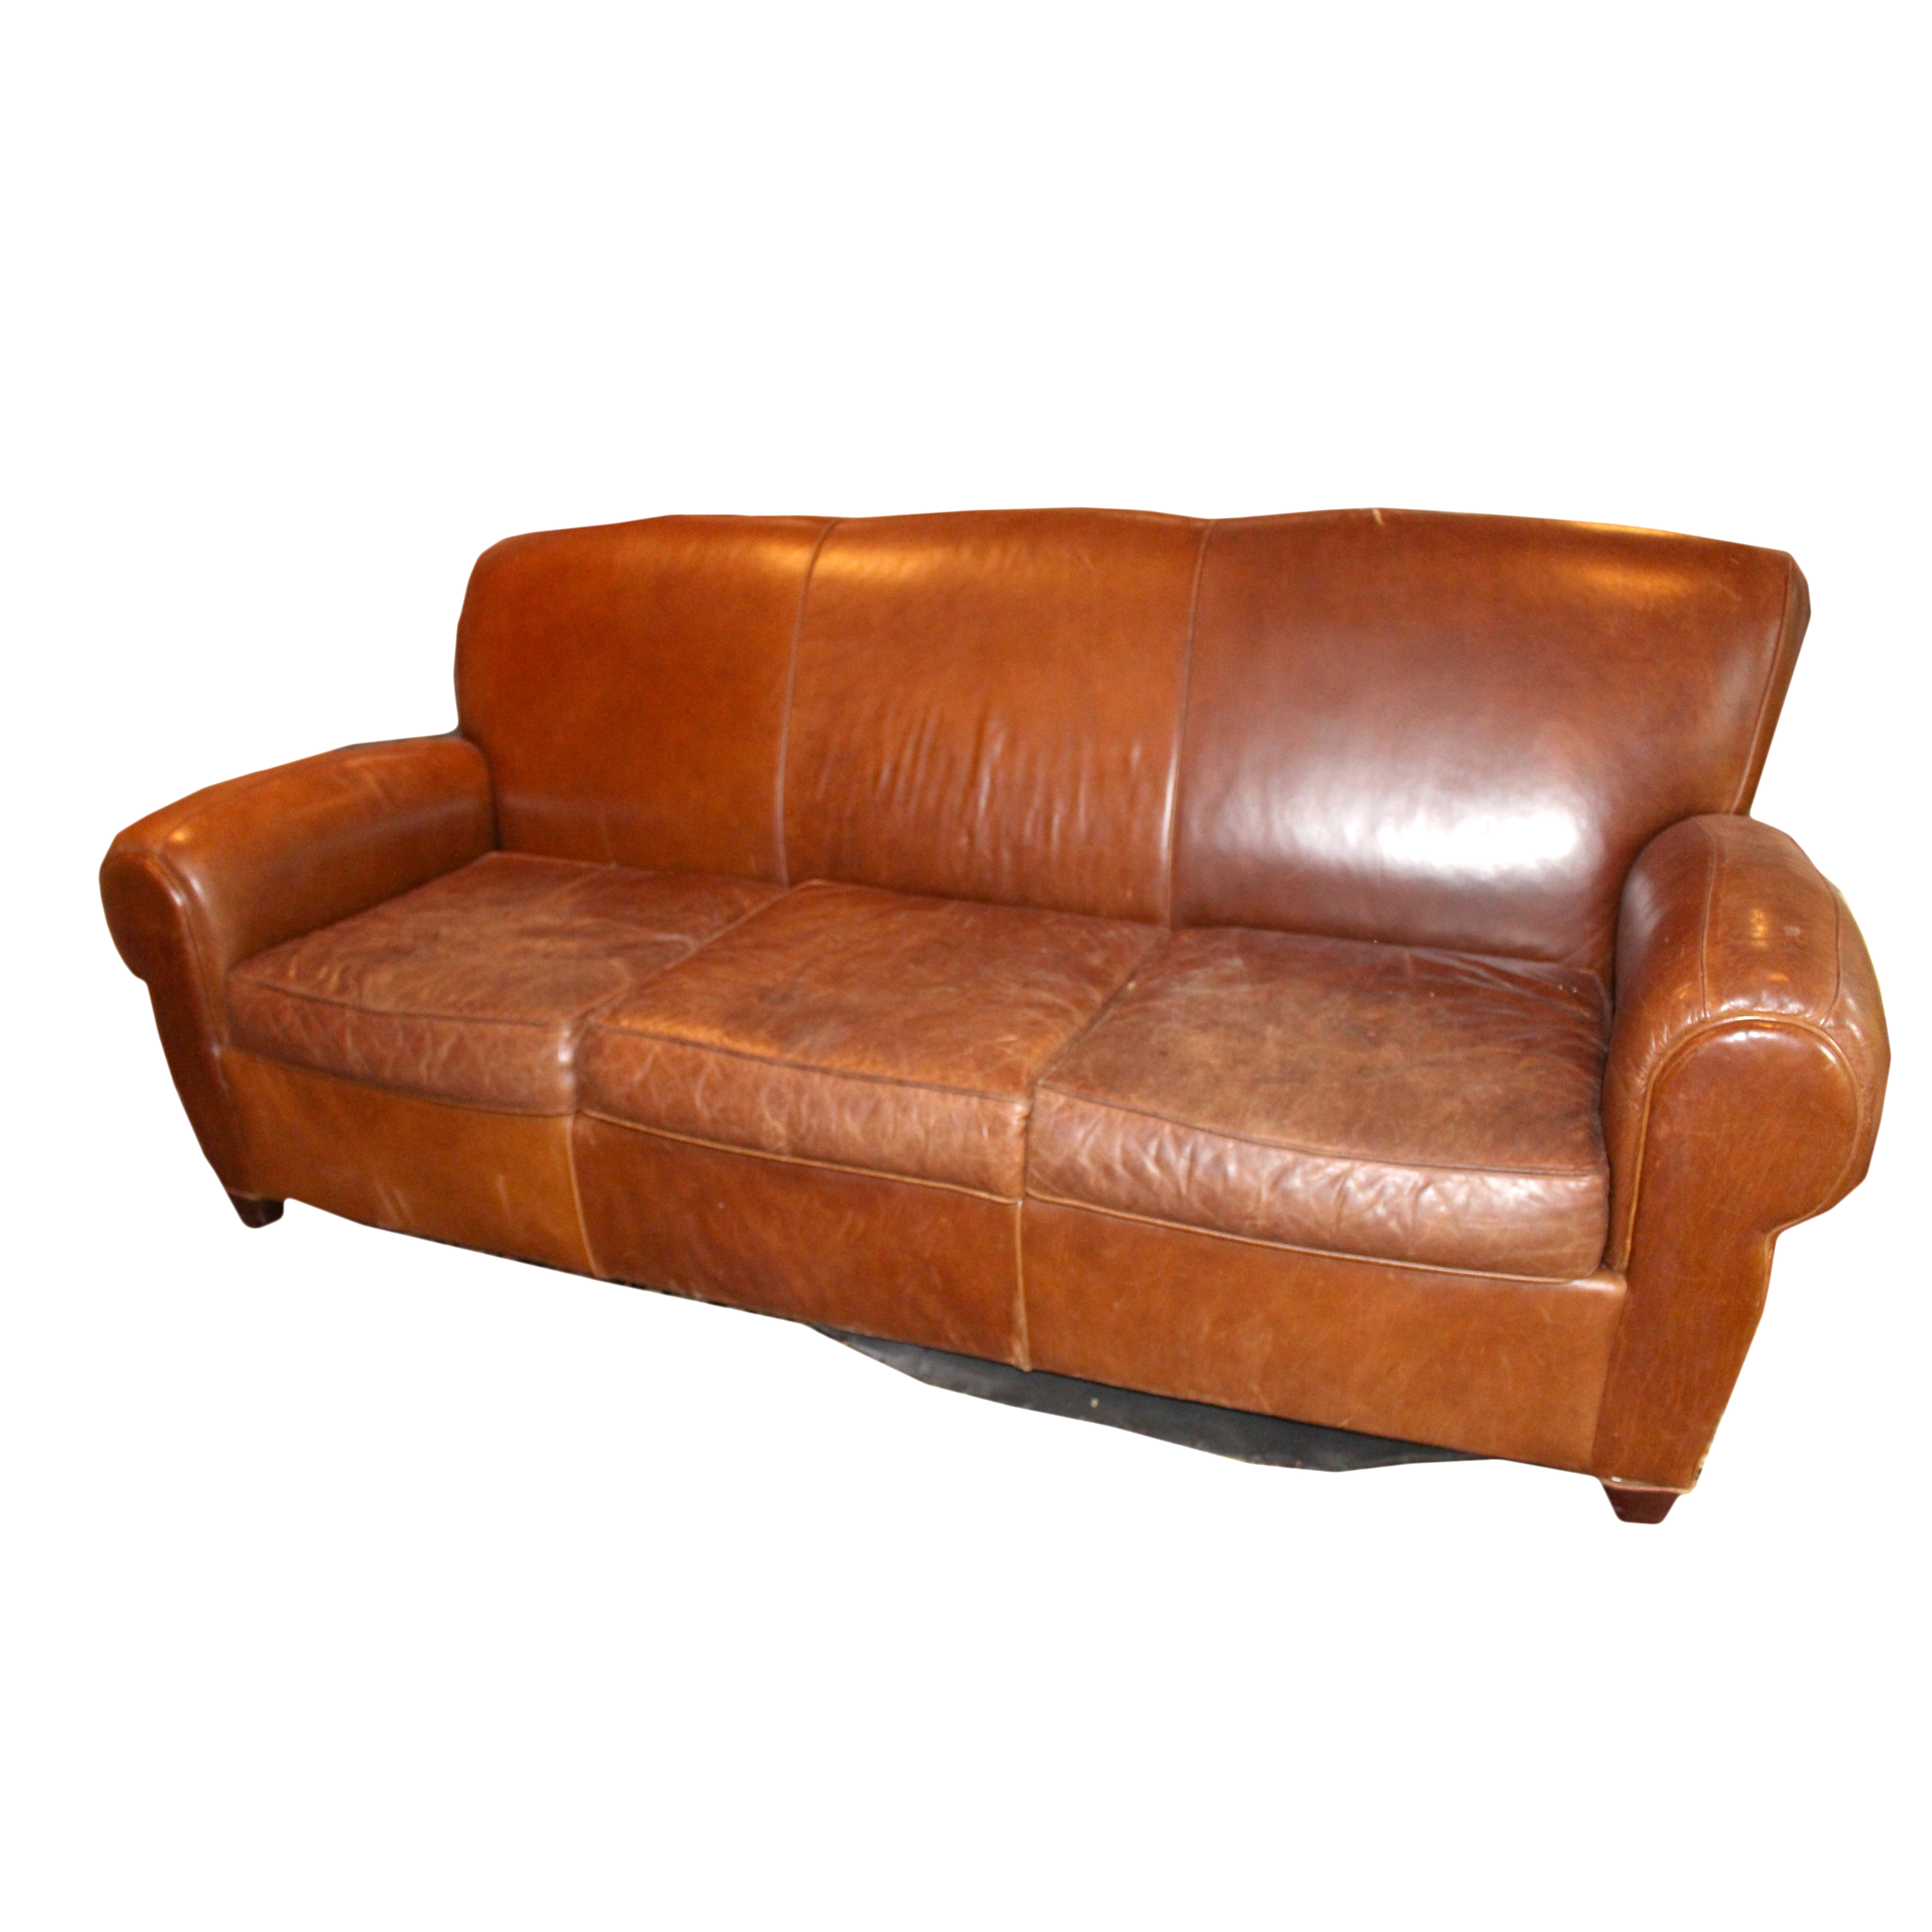 pottery barn sofa for sale by owner danish sleeper leather mitchell gold ebth